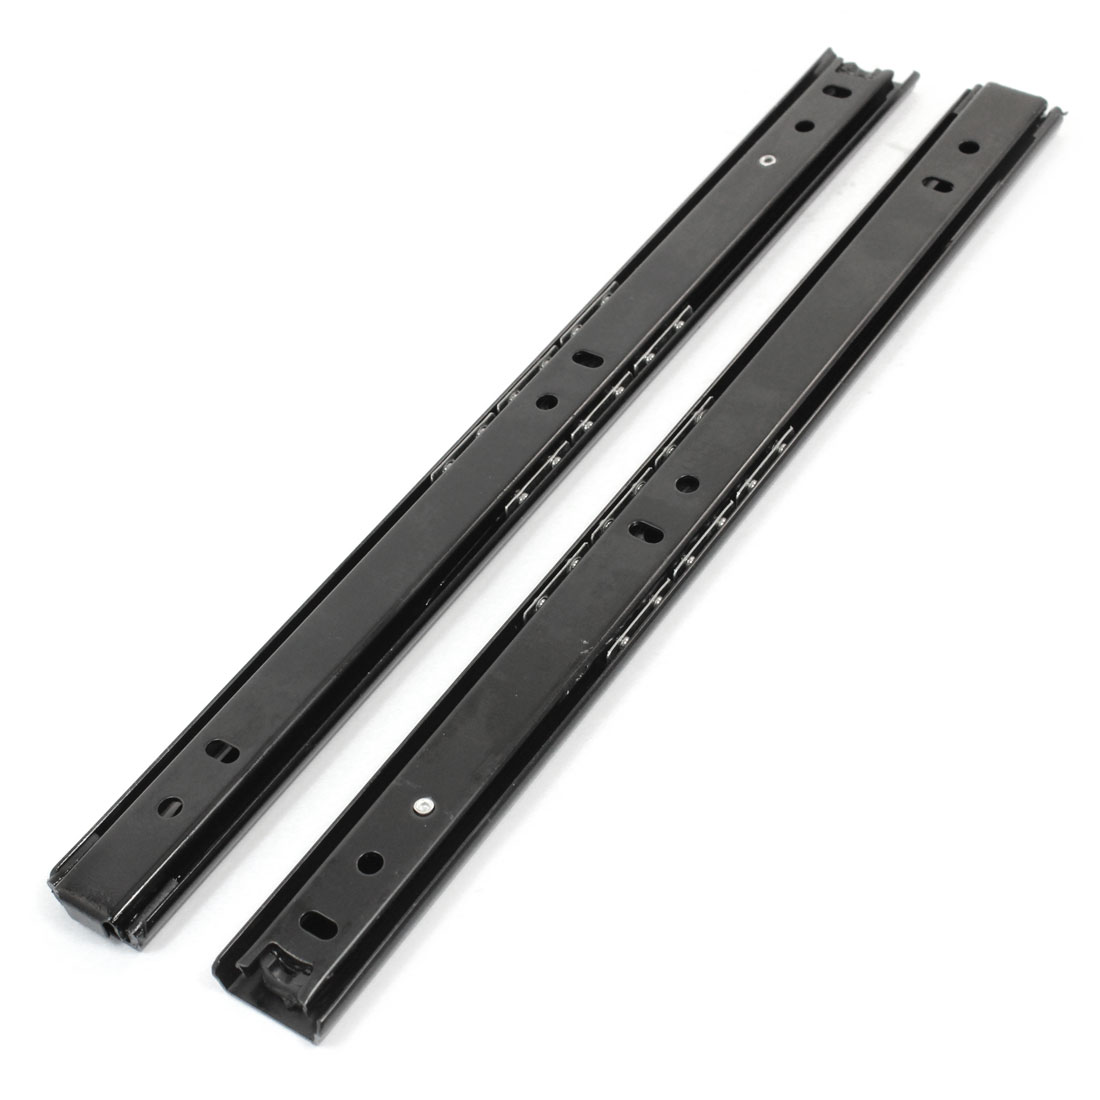 2 Pcs Side Mount 2 Section Drawer Slides Track Rail 47cm Long Black